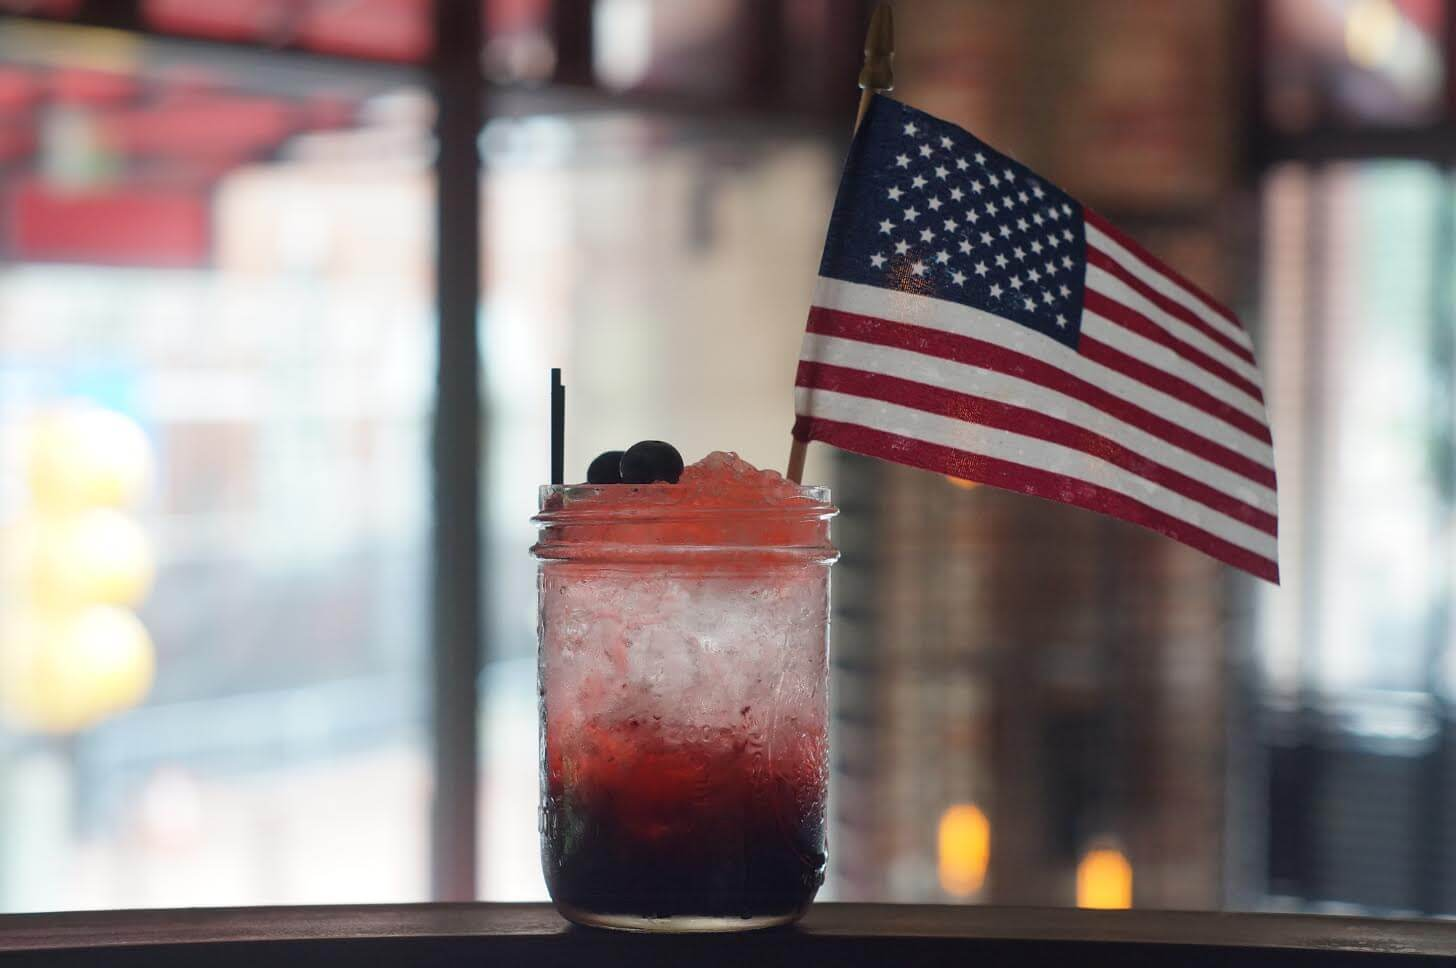 Independence Jawn cocktail at Red Owl Tavern - Red, White and Blue cocktail recipes for 4th of July